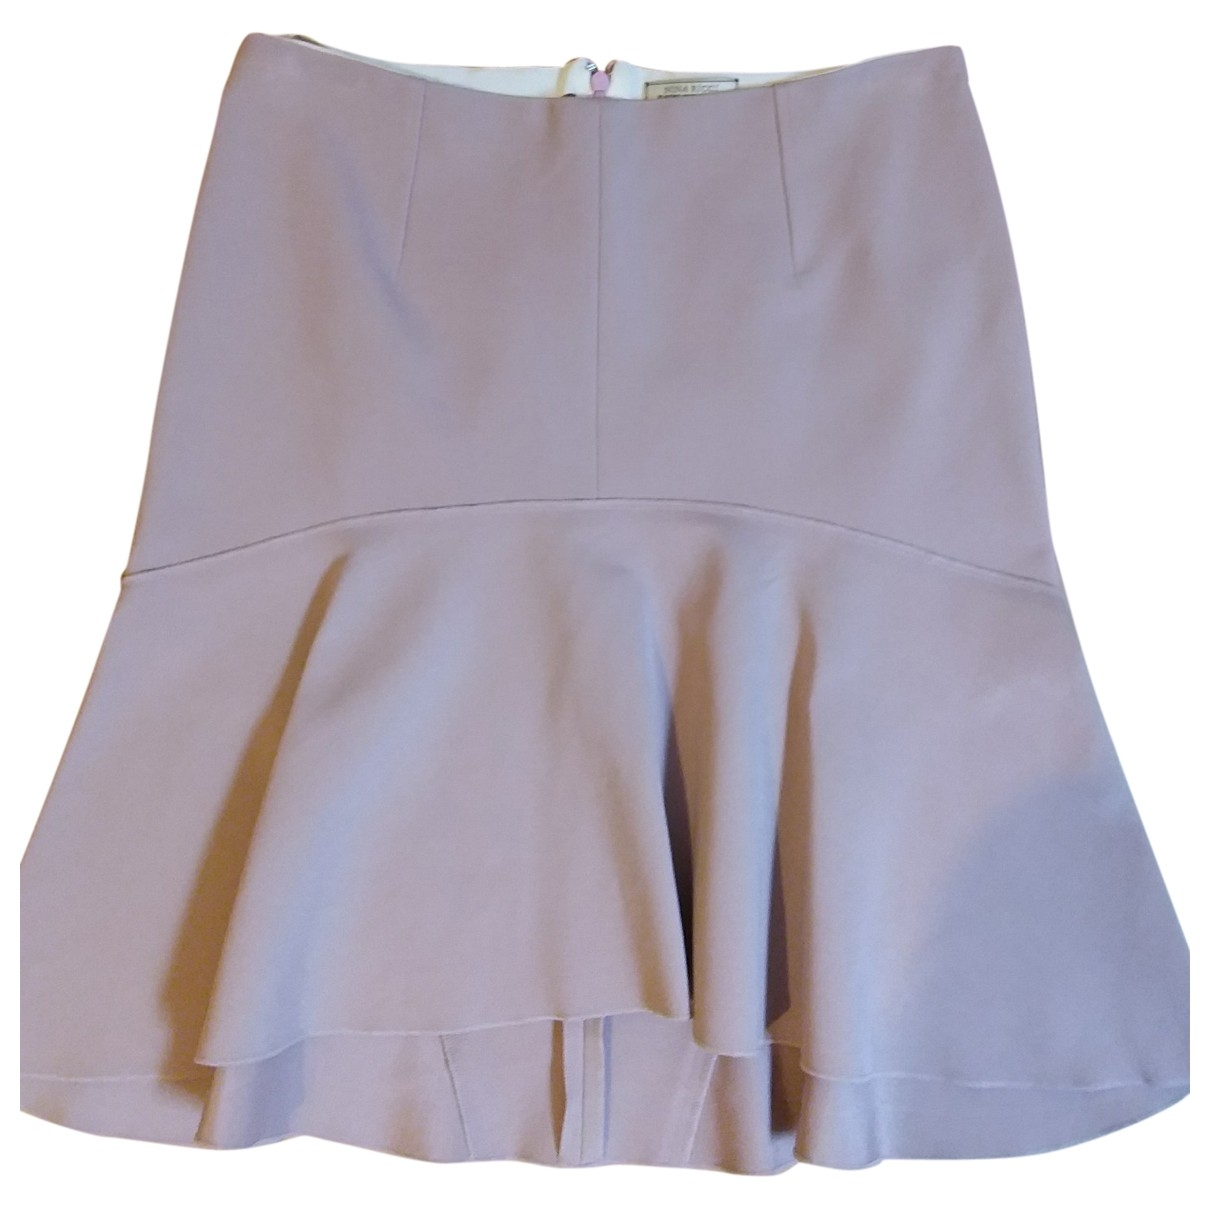 Nina Ricci \N Pink skirt for Women 36 FR